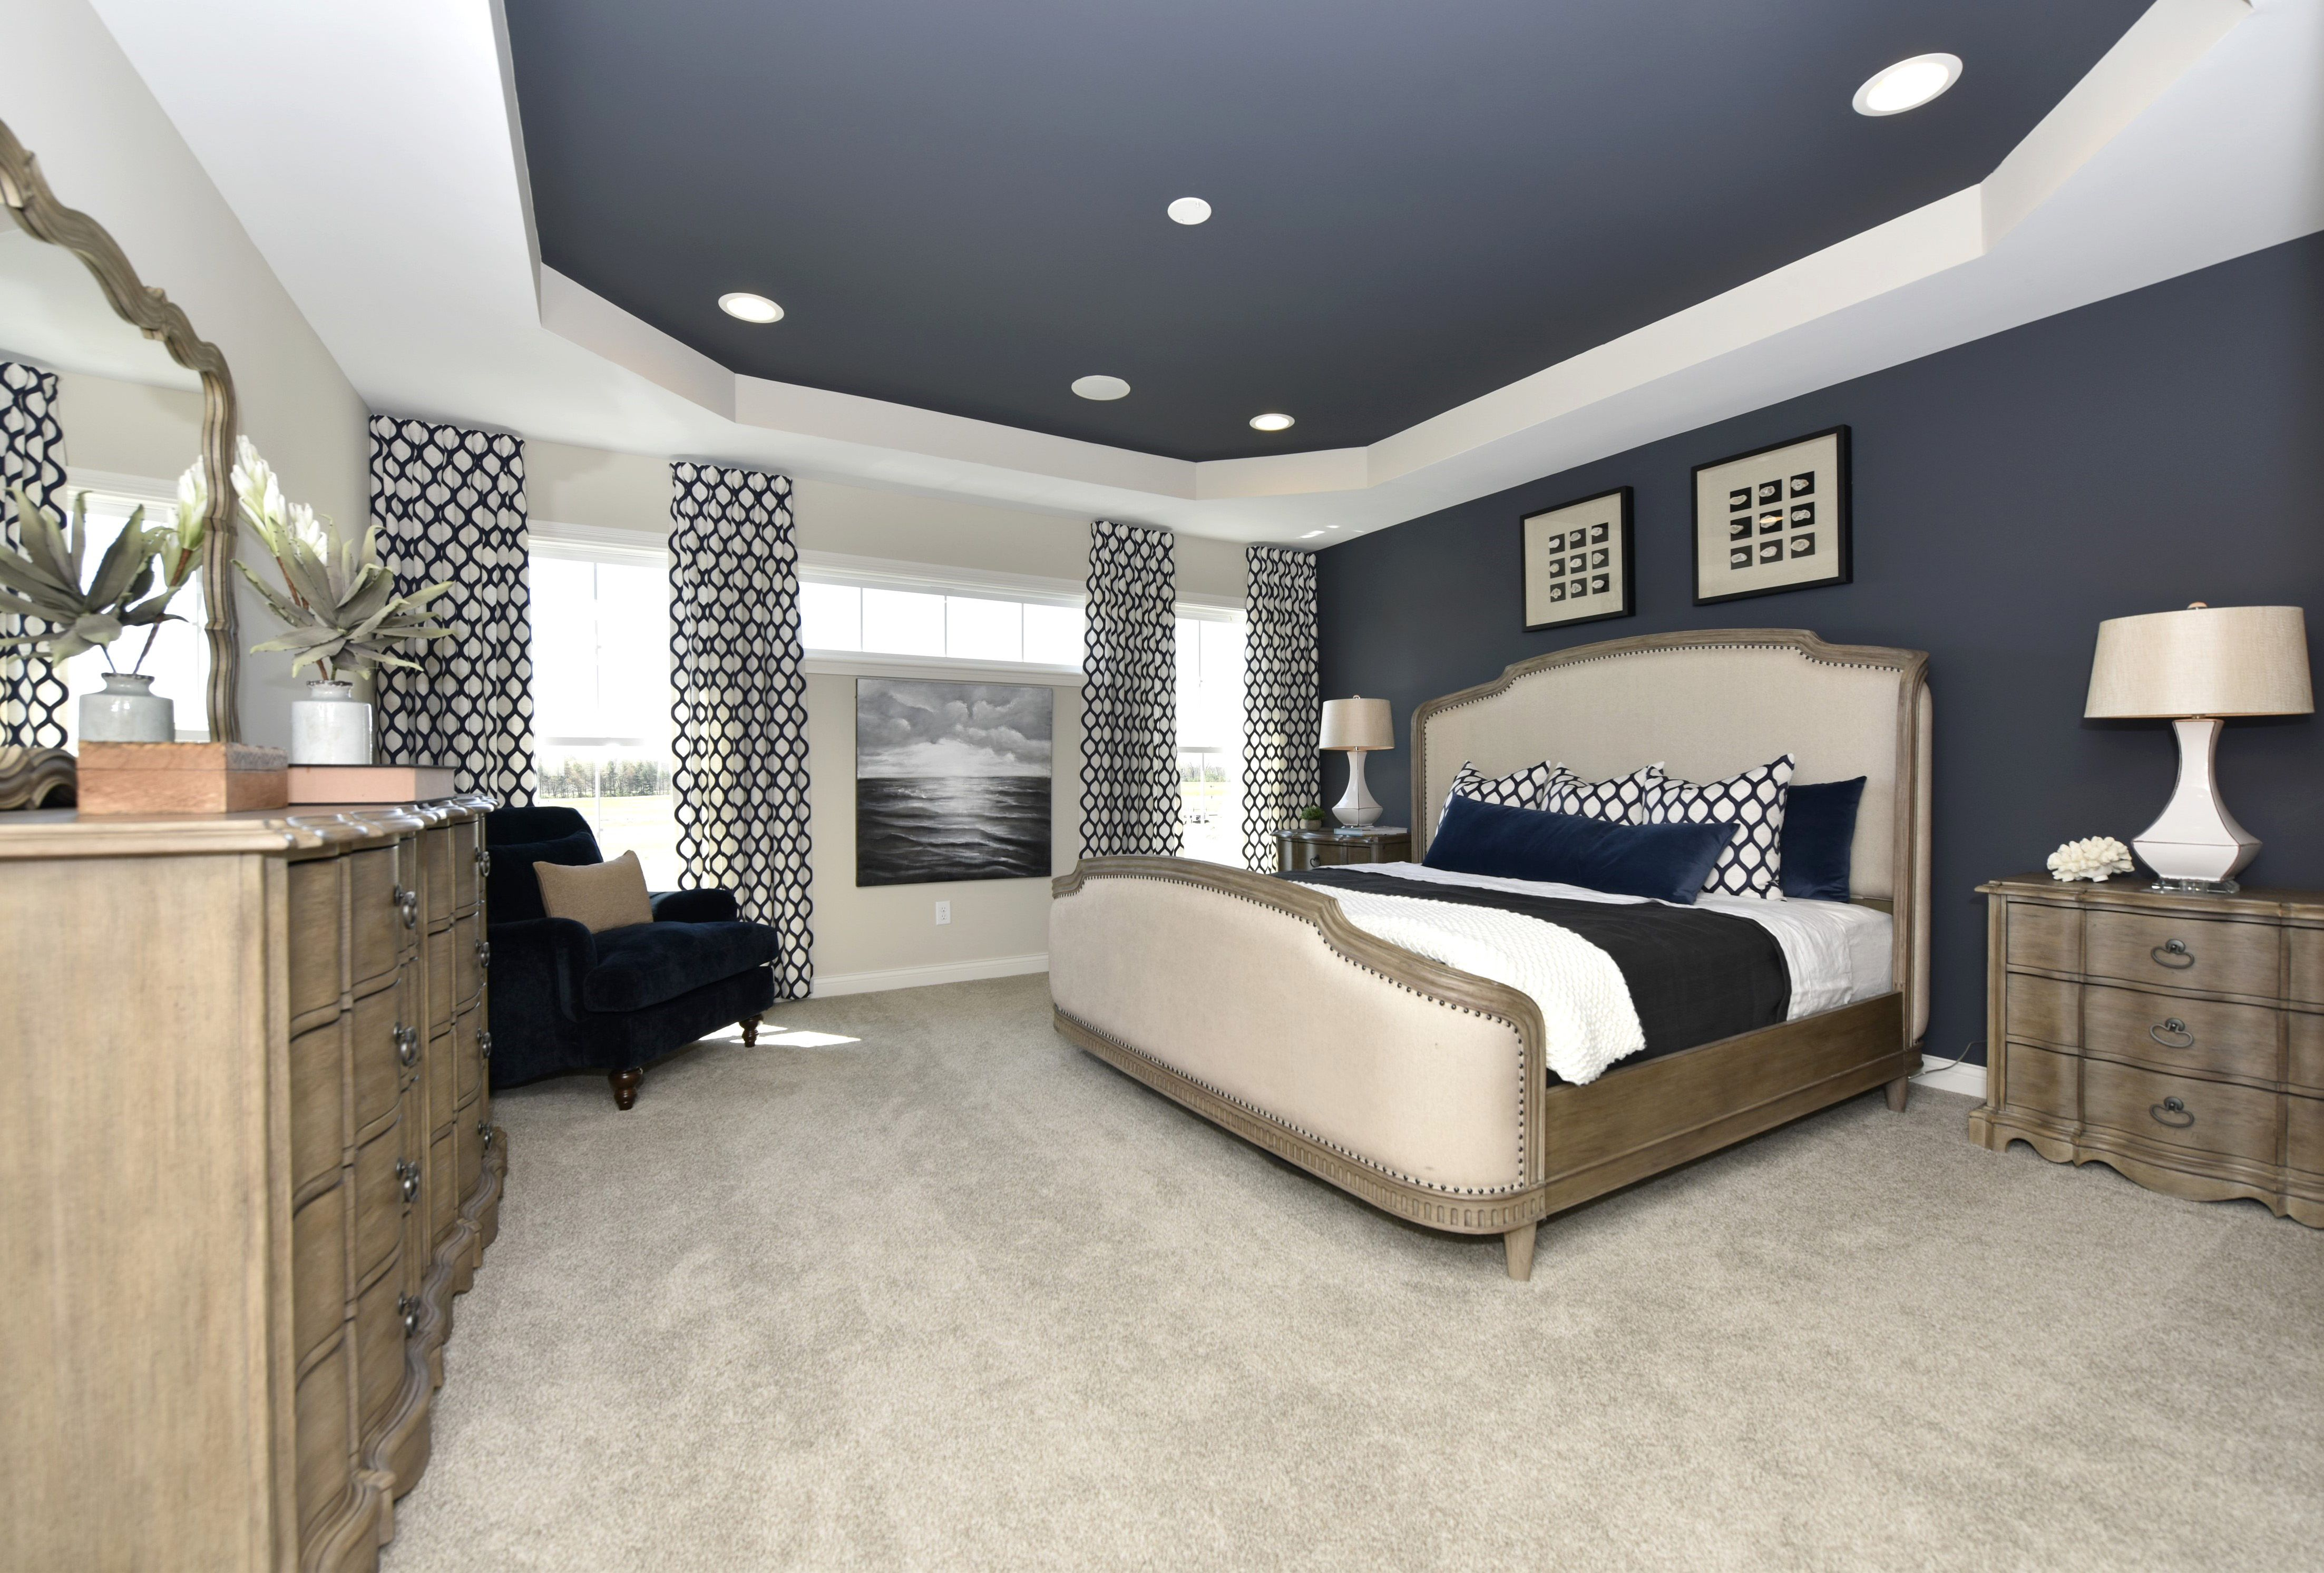 Create A Luxurious Master Bedroom By Painting A Feature Wall And The Trey Ceilings The Luxury Bedroom Master Bedroom Paint Colors Master Ceiling Design Bedroom Luxury master bedroom paint